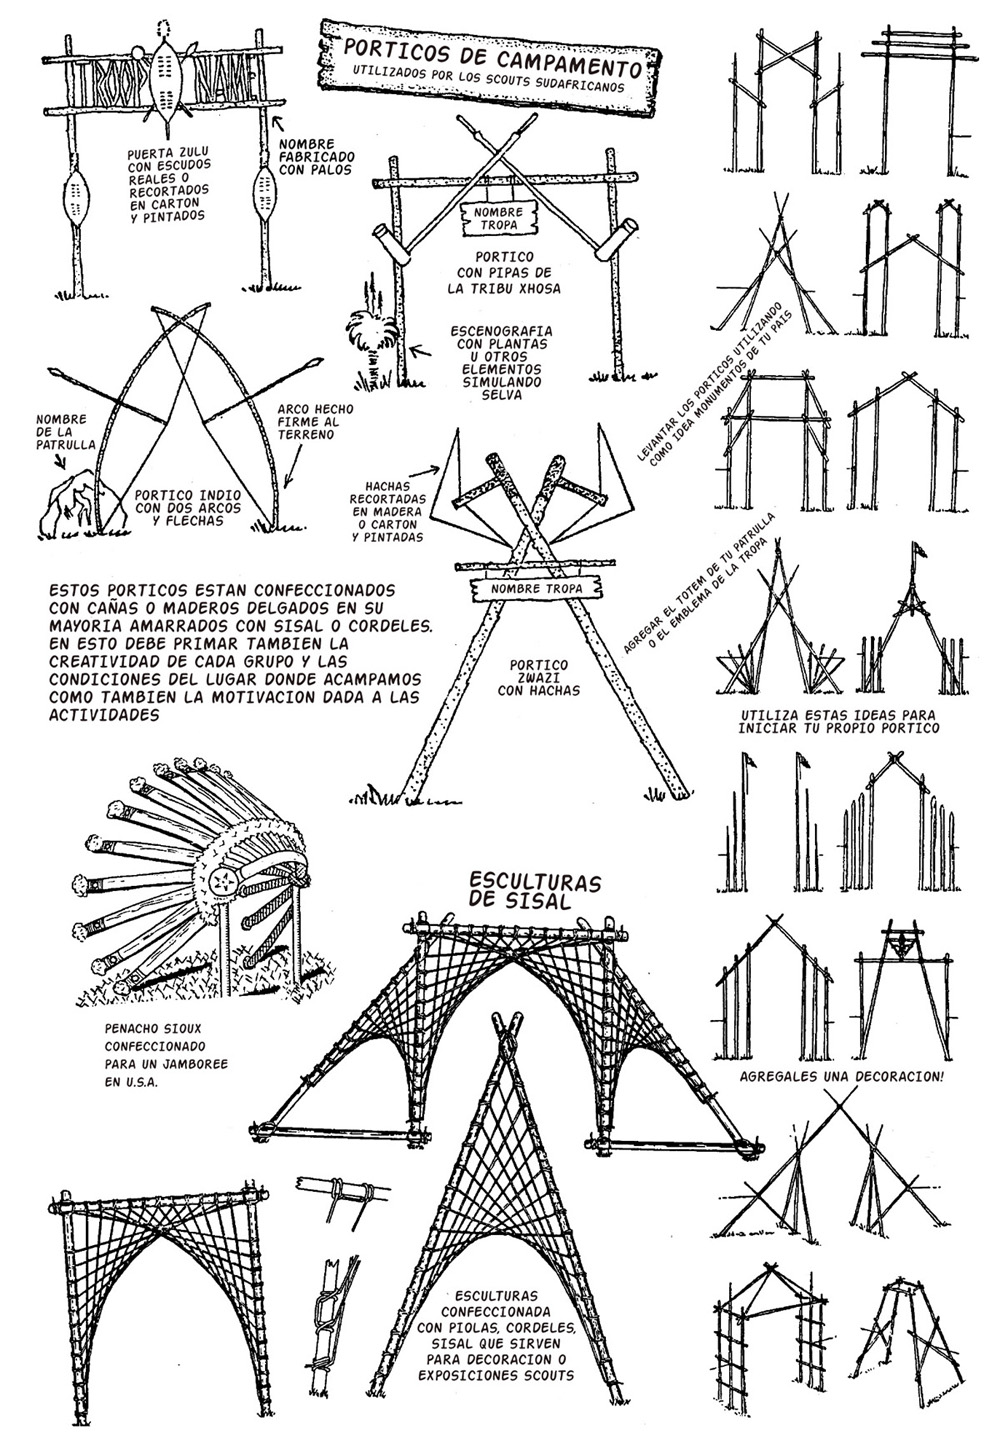 The Boy Scouts suggested these modifications for your